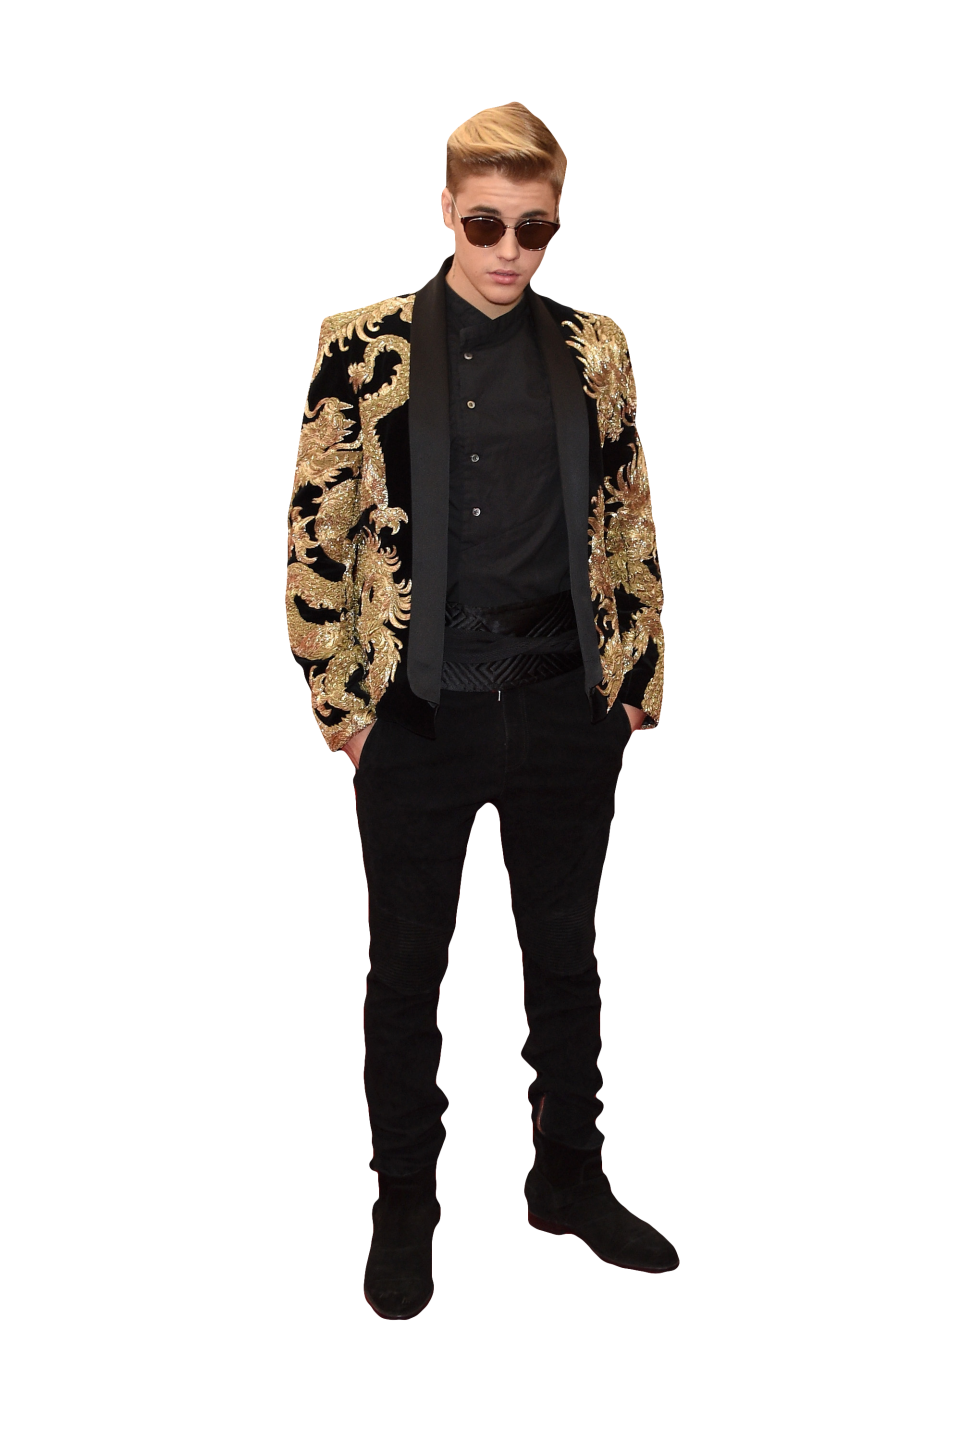 Justin Bieber in Sunglasses PNG Image